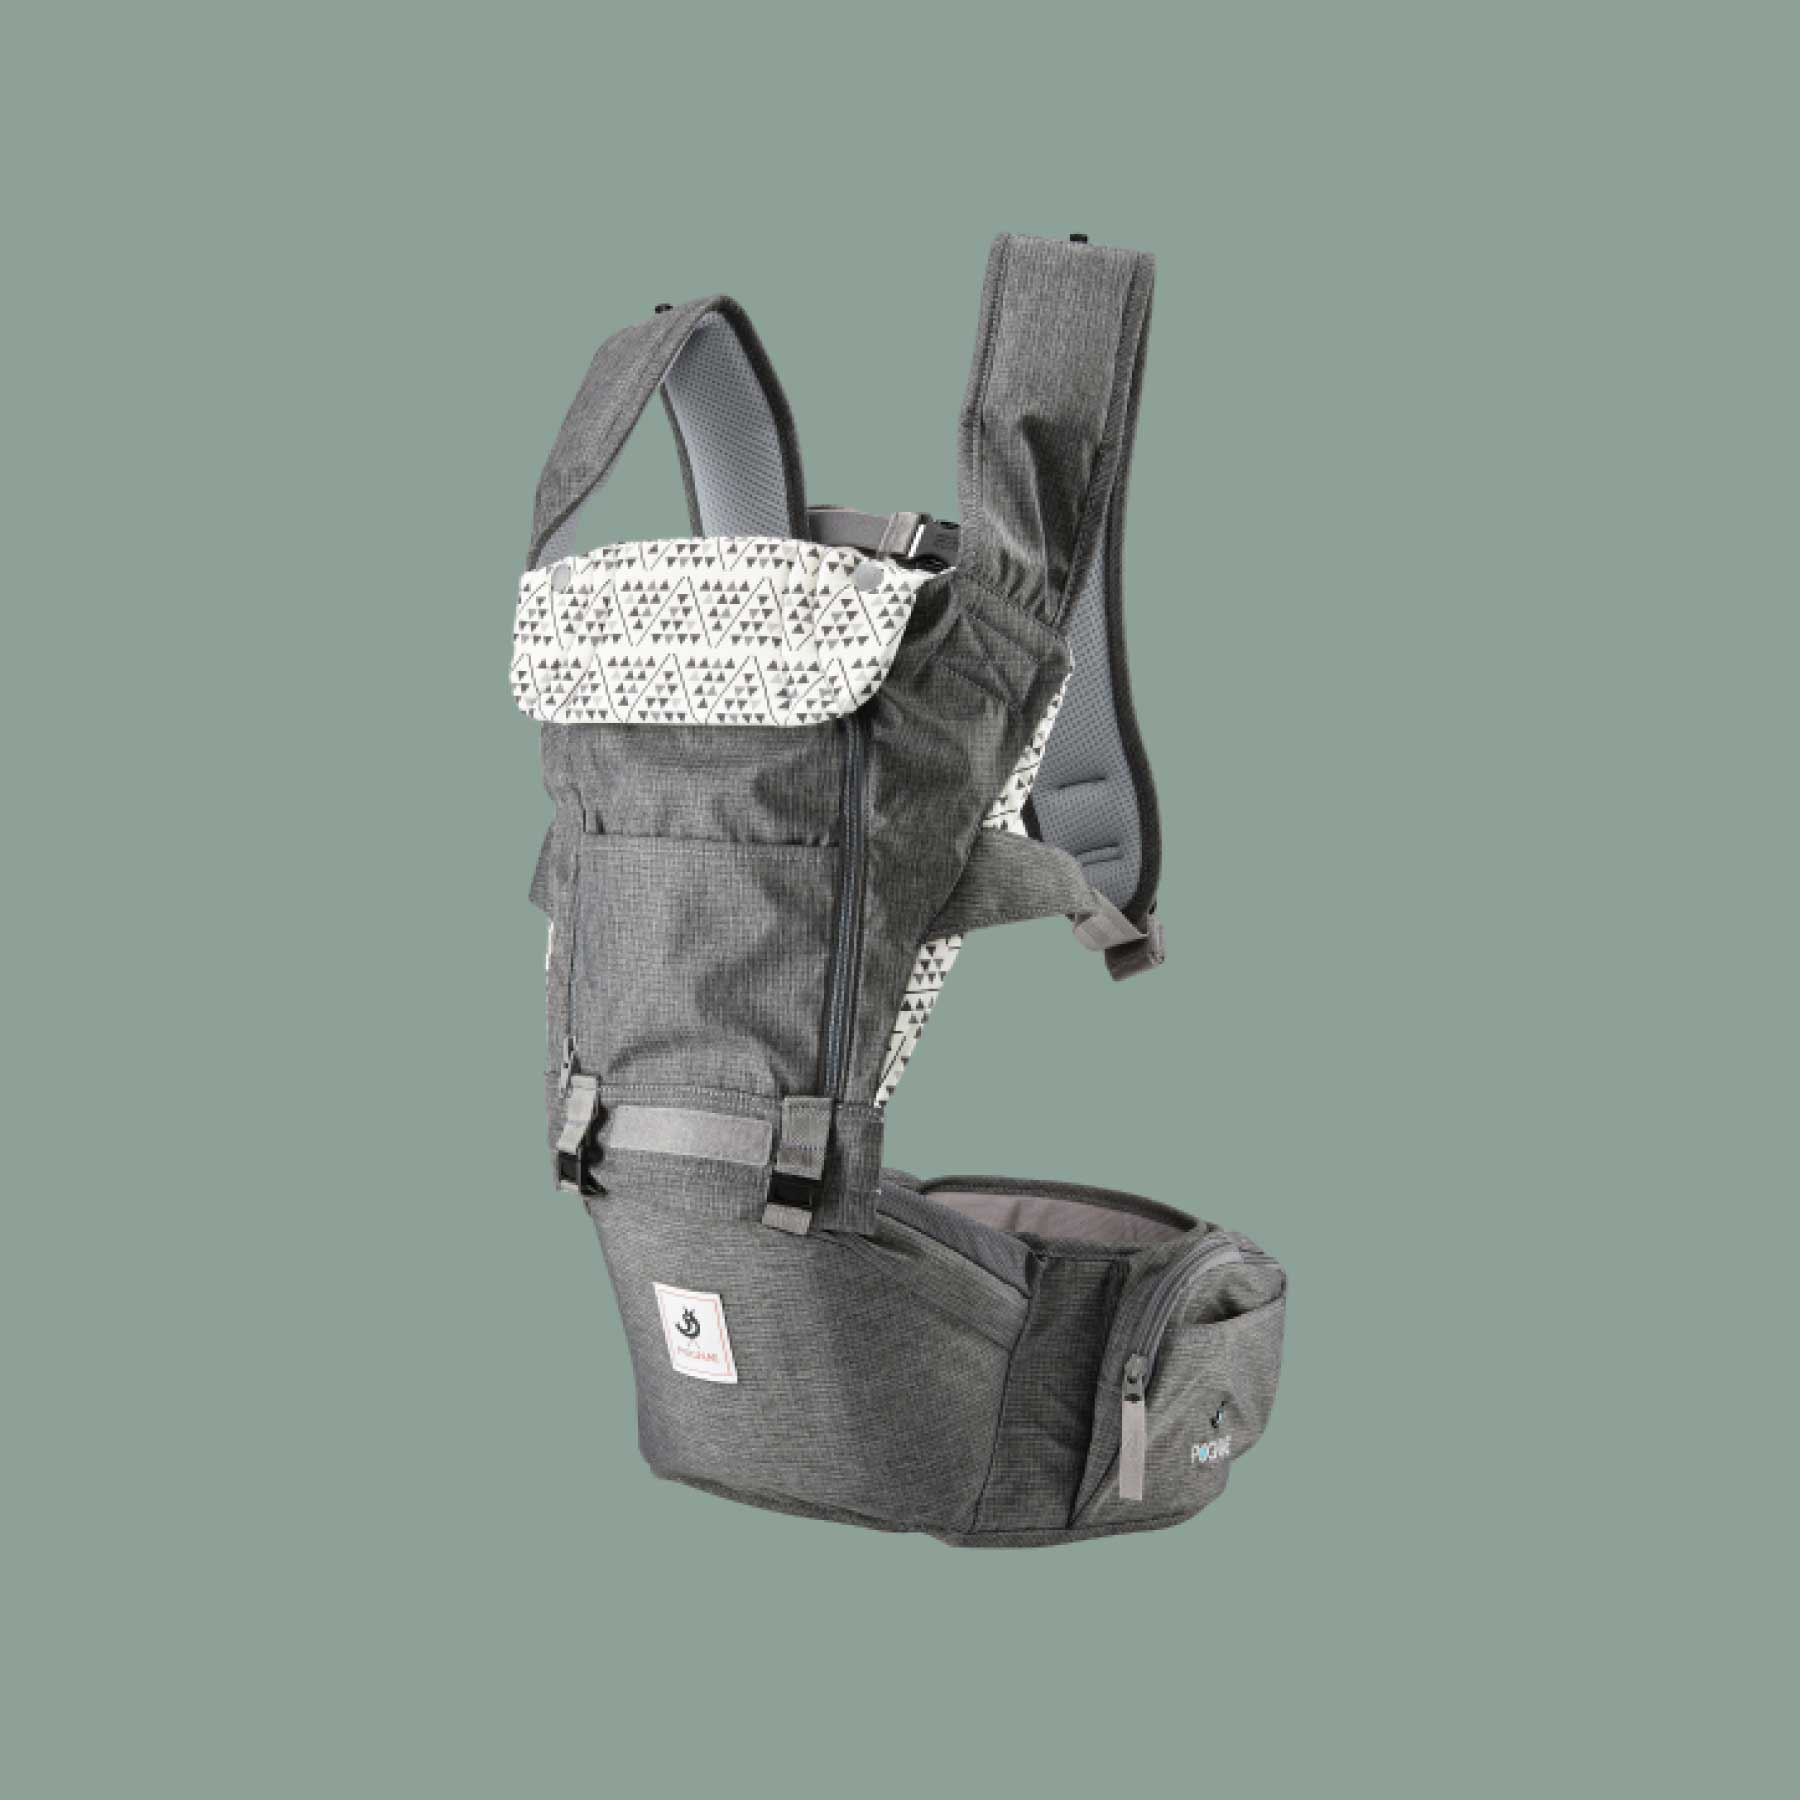 Pognae NEO No.5 Hipseat Baby Carrier Review